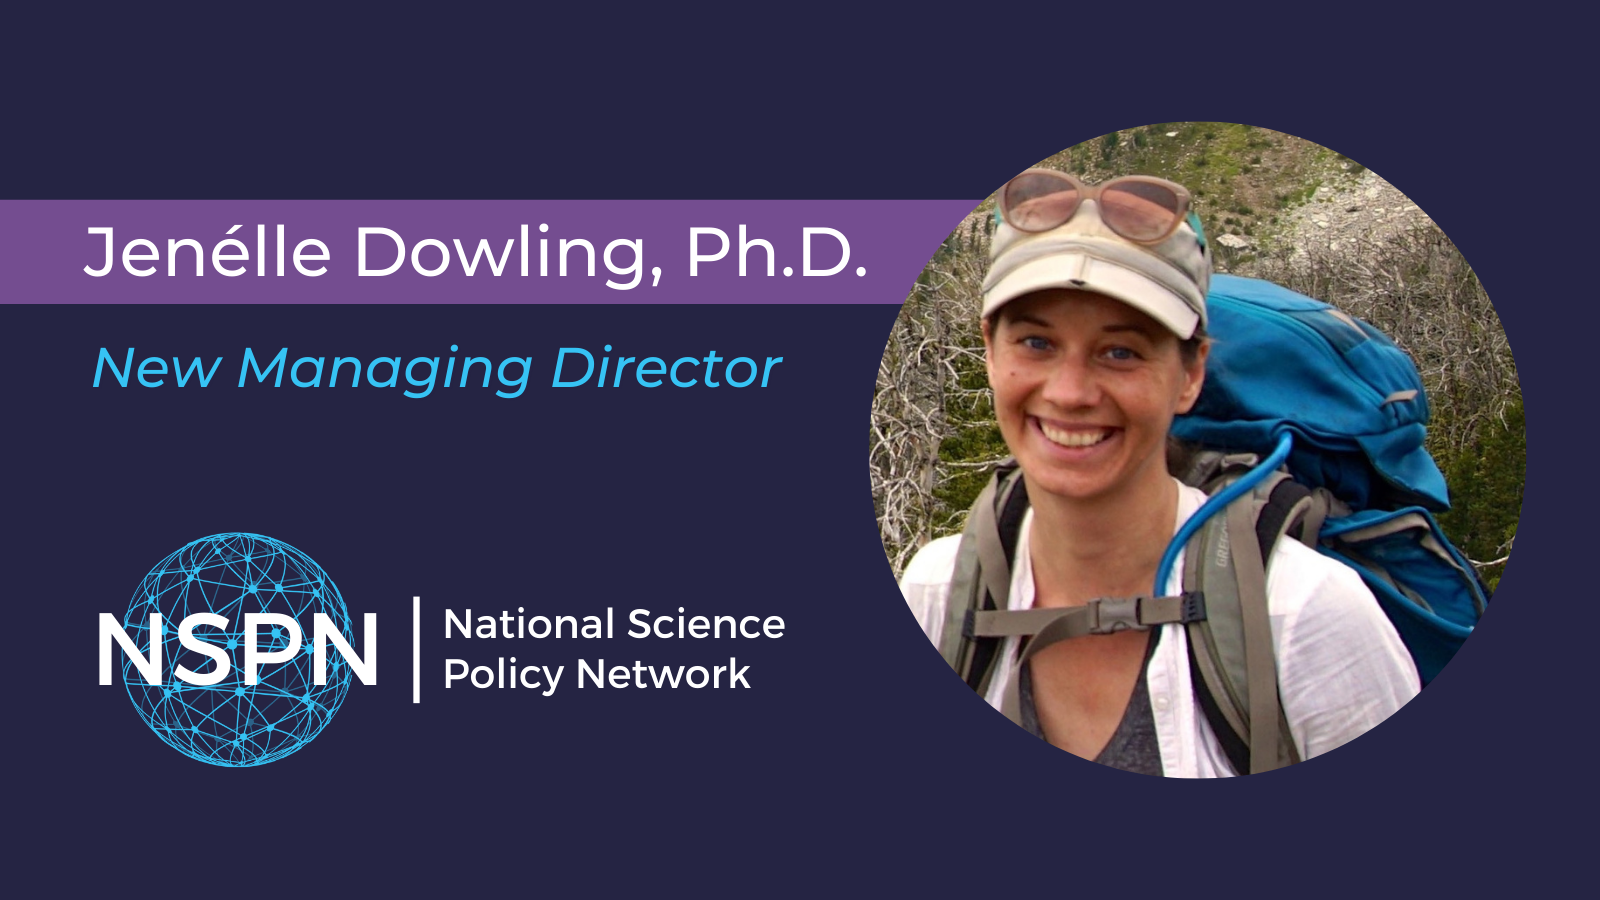 Jenelle Dowling, Ph.D. New Managing Director. Logo for the National Science Policy Network, lower left. Headshot of Jenelle Dowling, right.